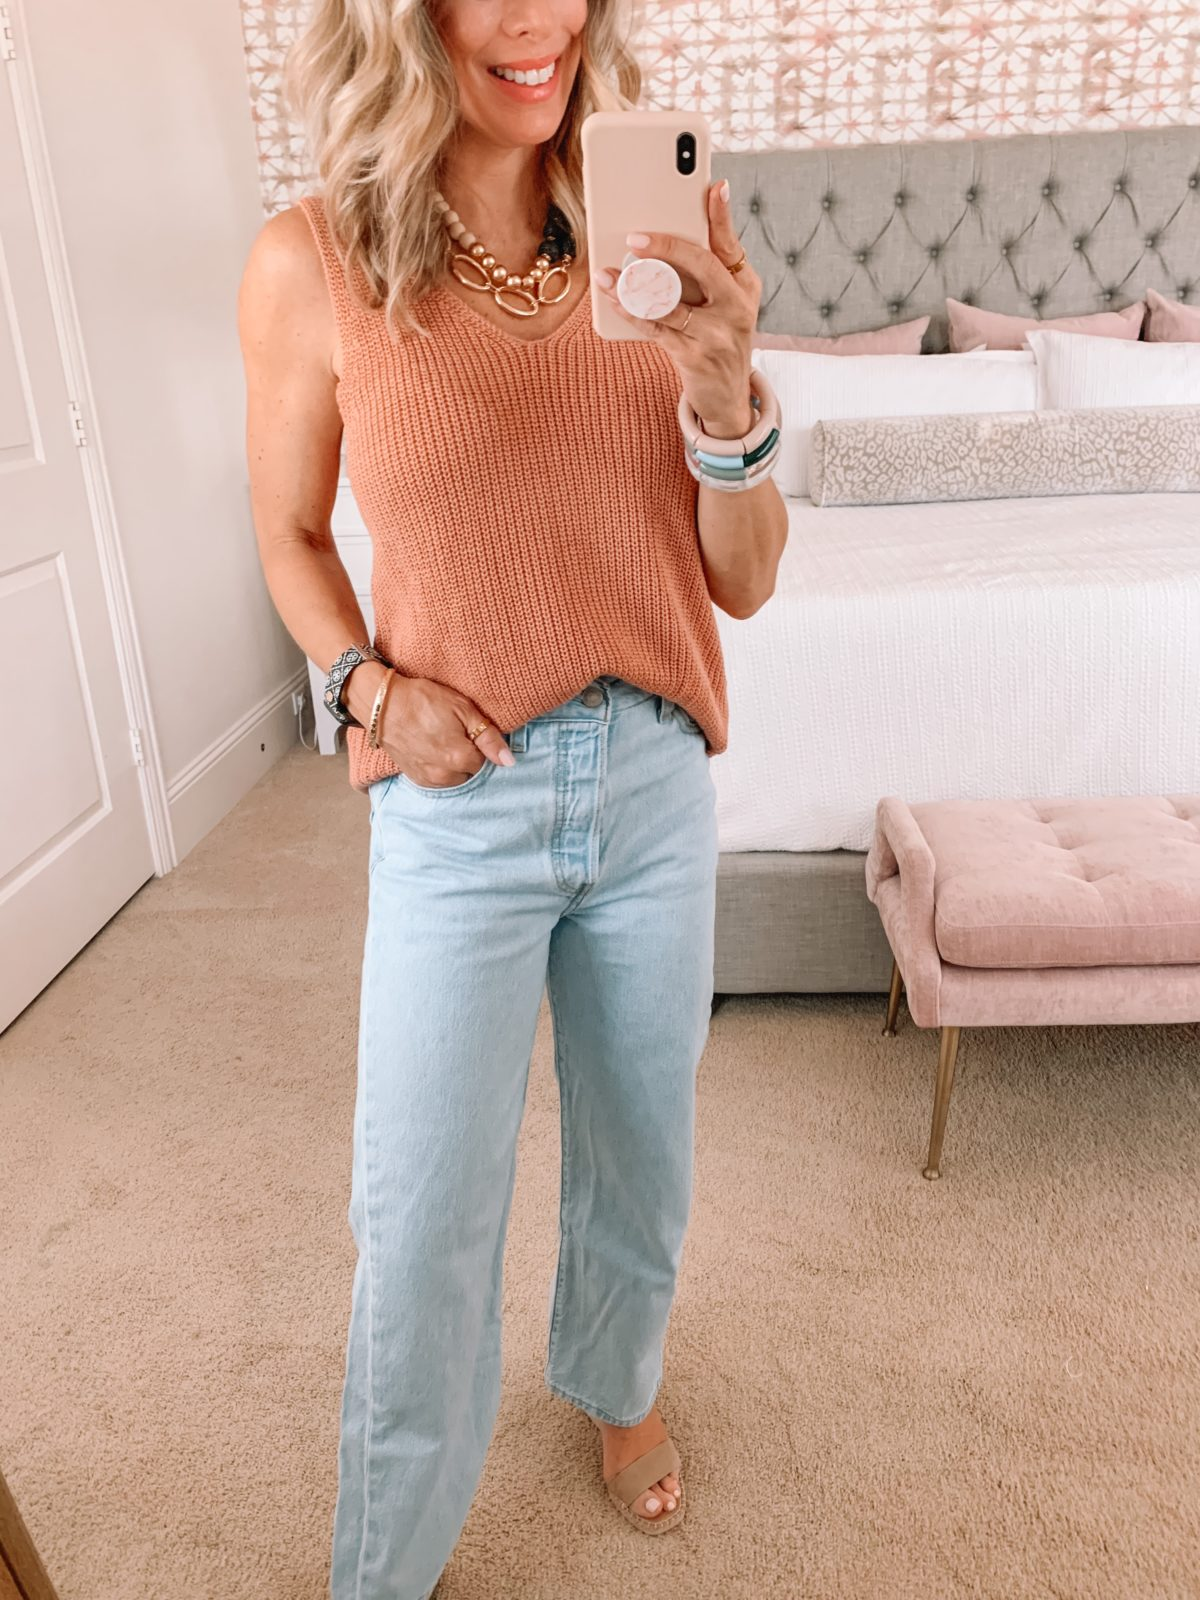 Amazon Fashion Faves, Pink Sweater Tank and Wide Leg Jeans with Wedge Sandals